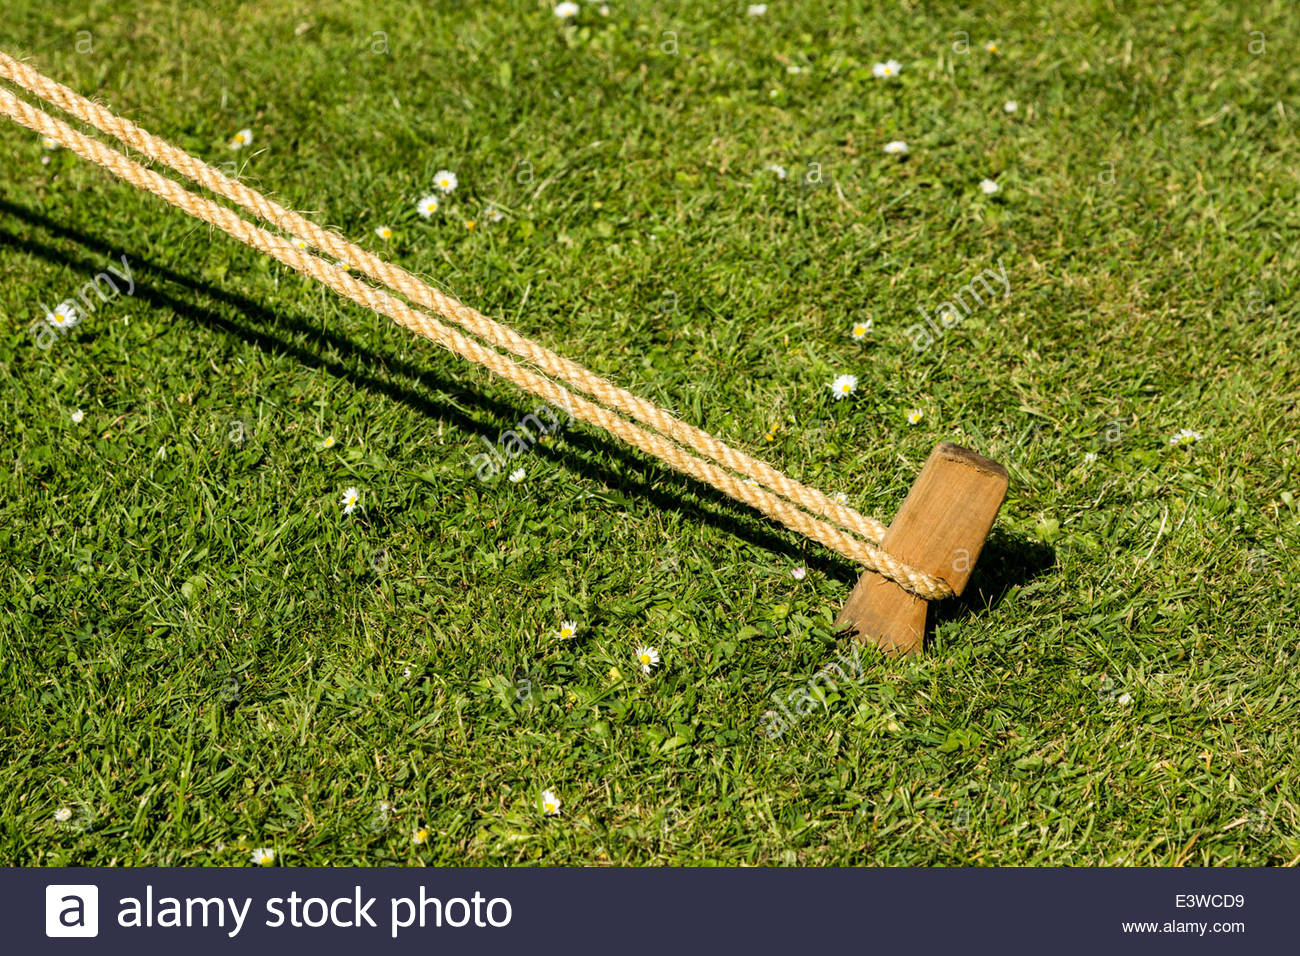 Wooden Tent Peg Stock Photo 71244021 Alamy